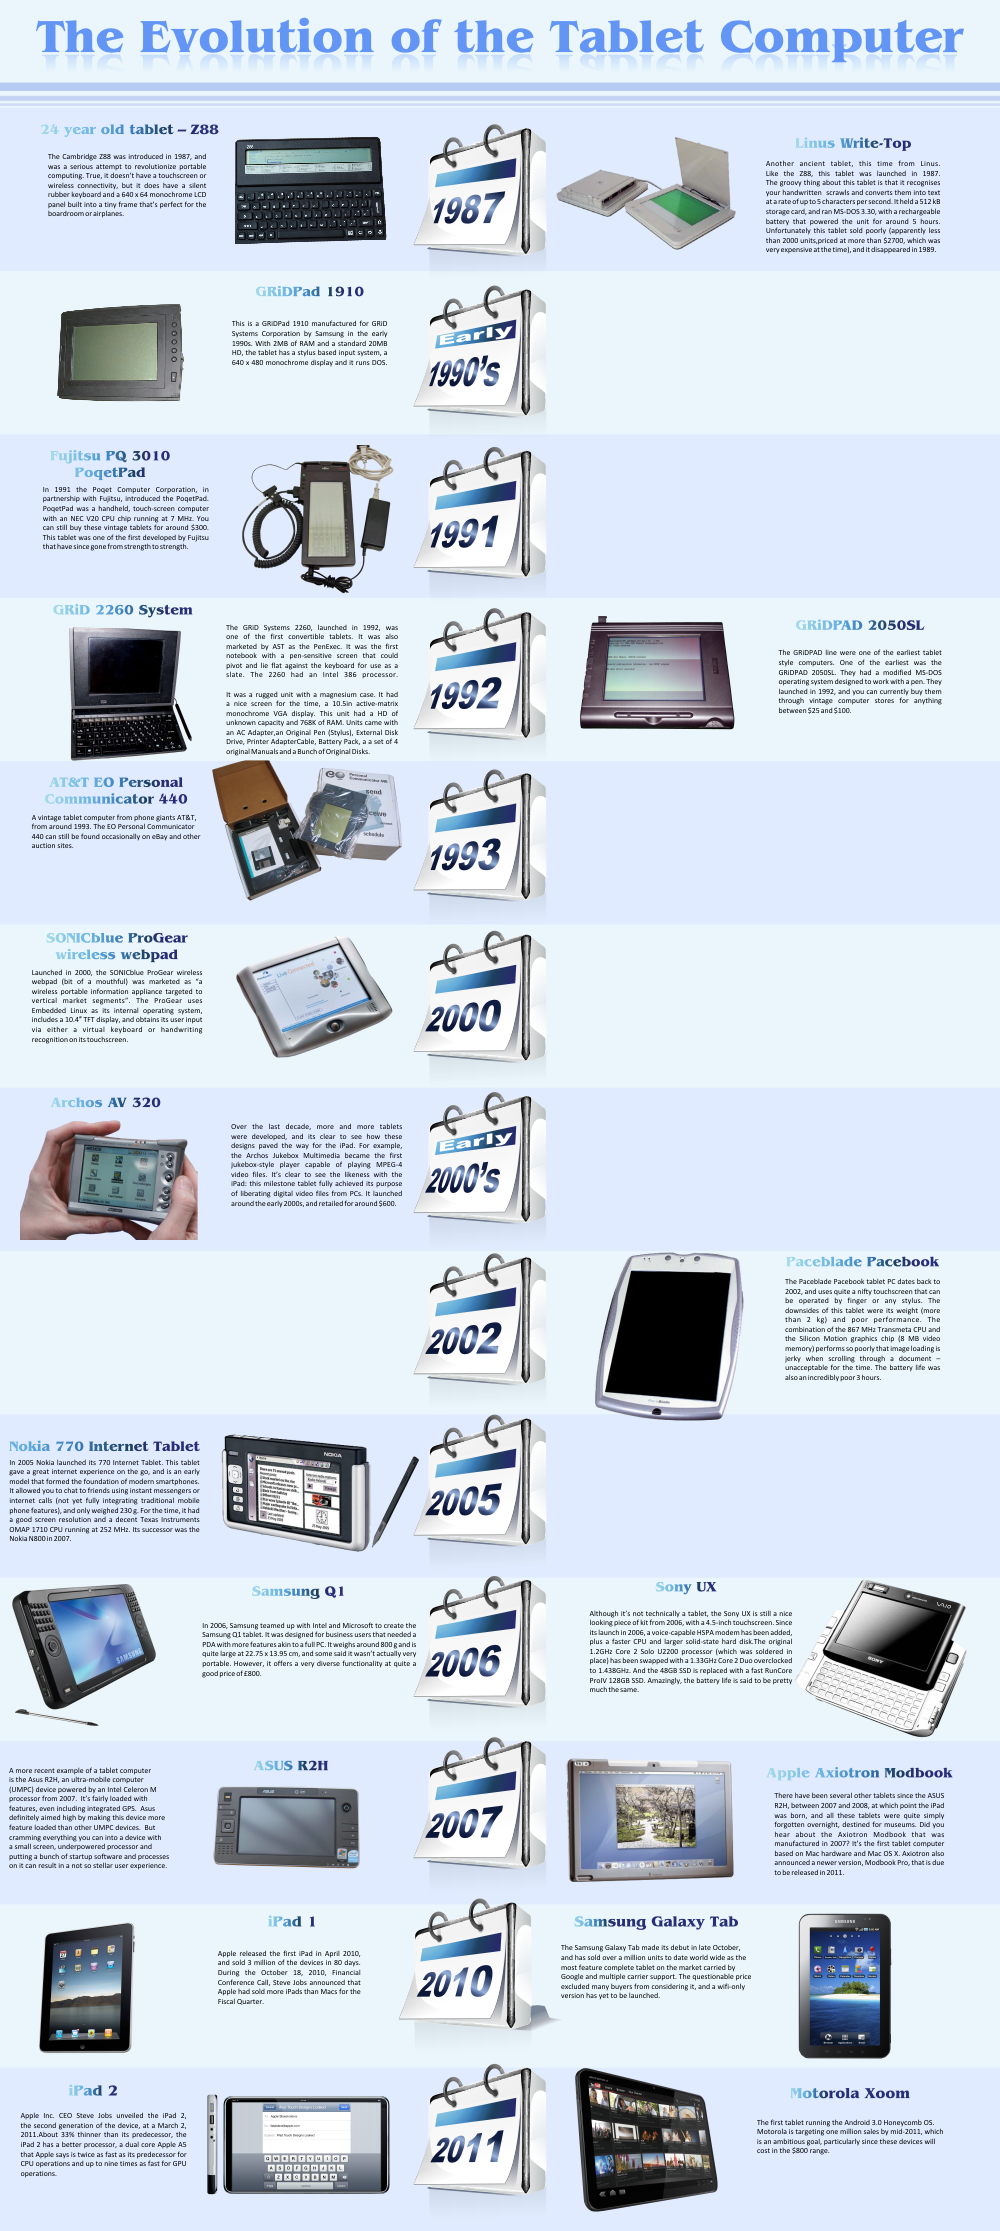 The History and Evolution of Tablet Computers [Infographic]